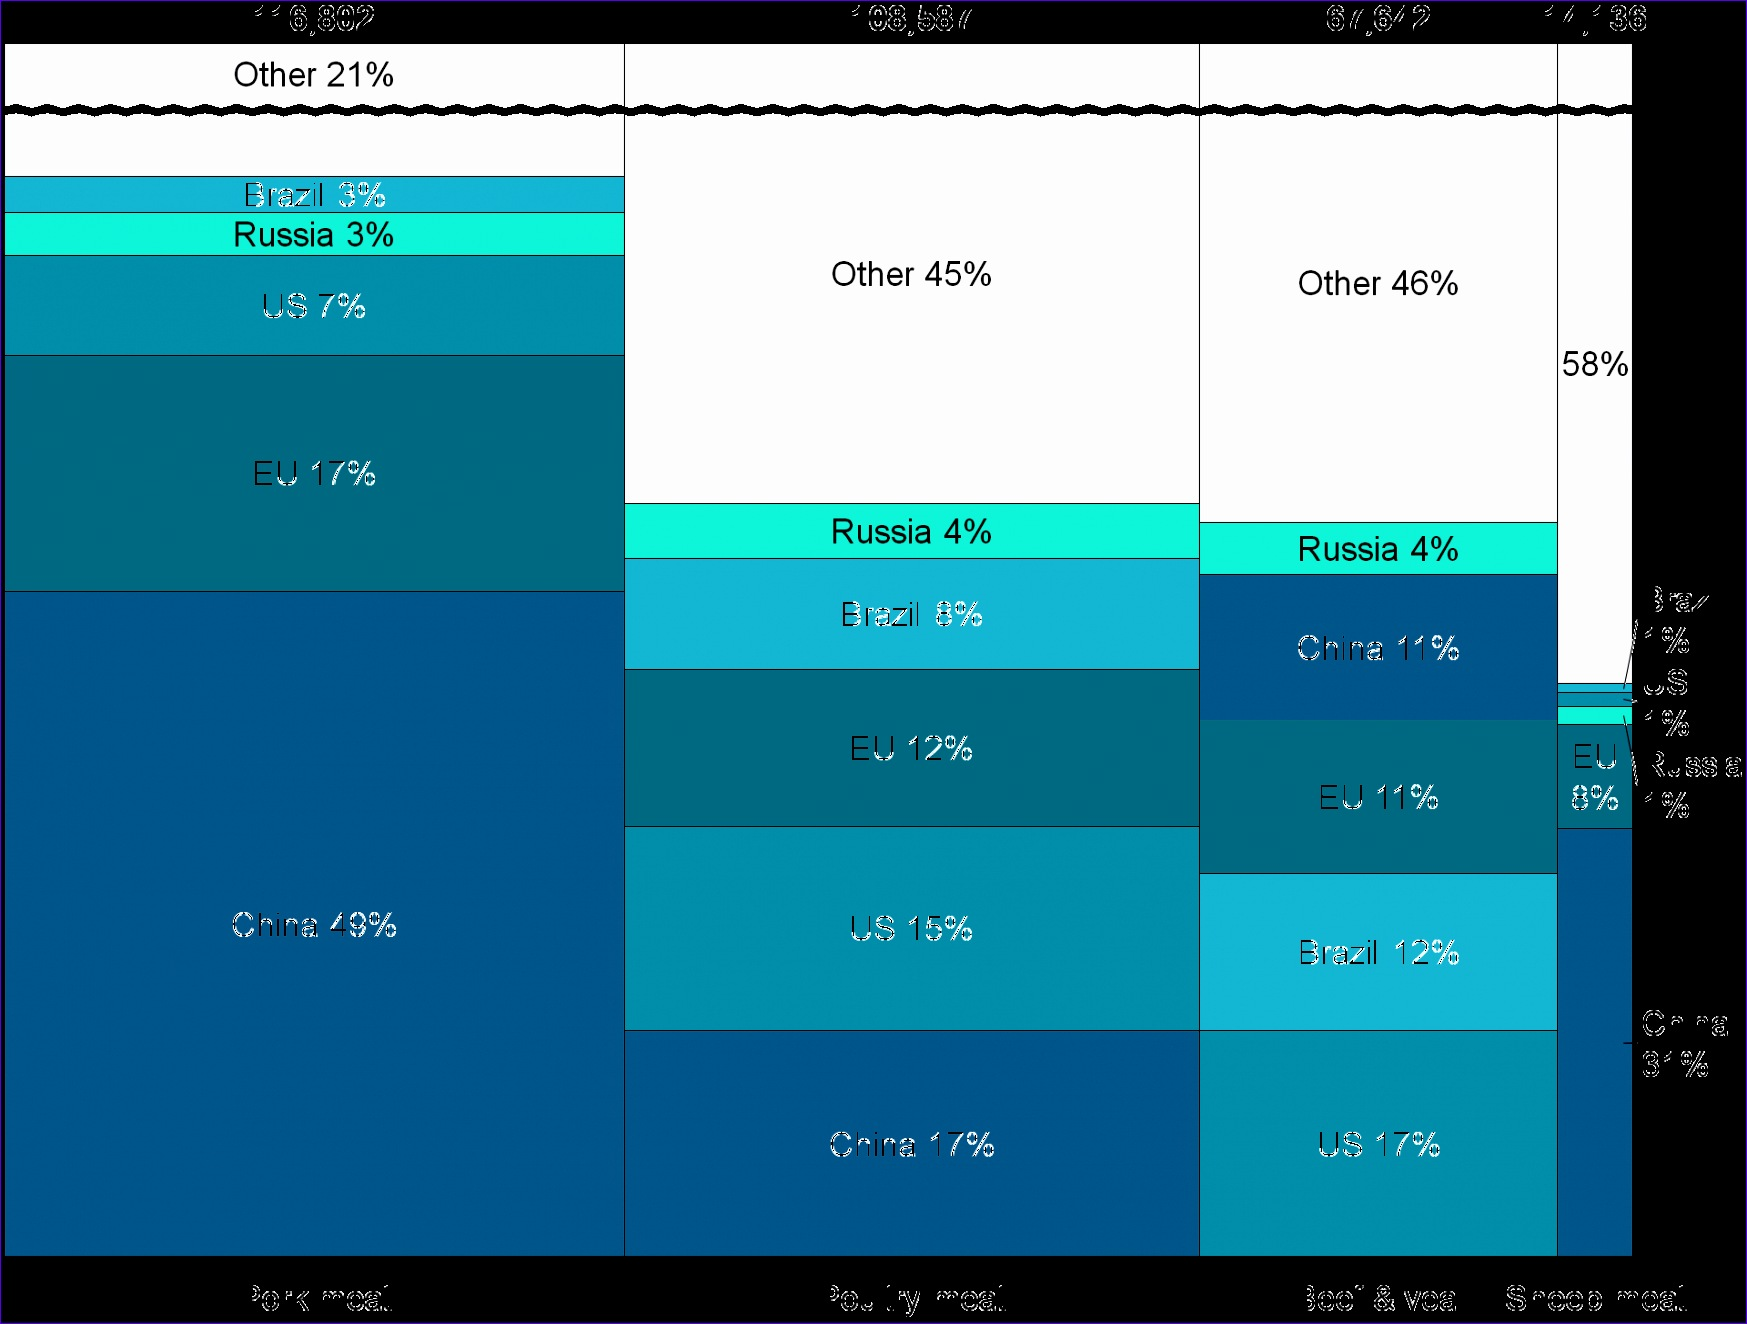 Excel Waterfall Chart Template with Negative Values Khneu Unique Powerpoint Charts Waterfall Gantt Mekko Process Flow and